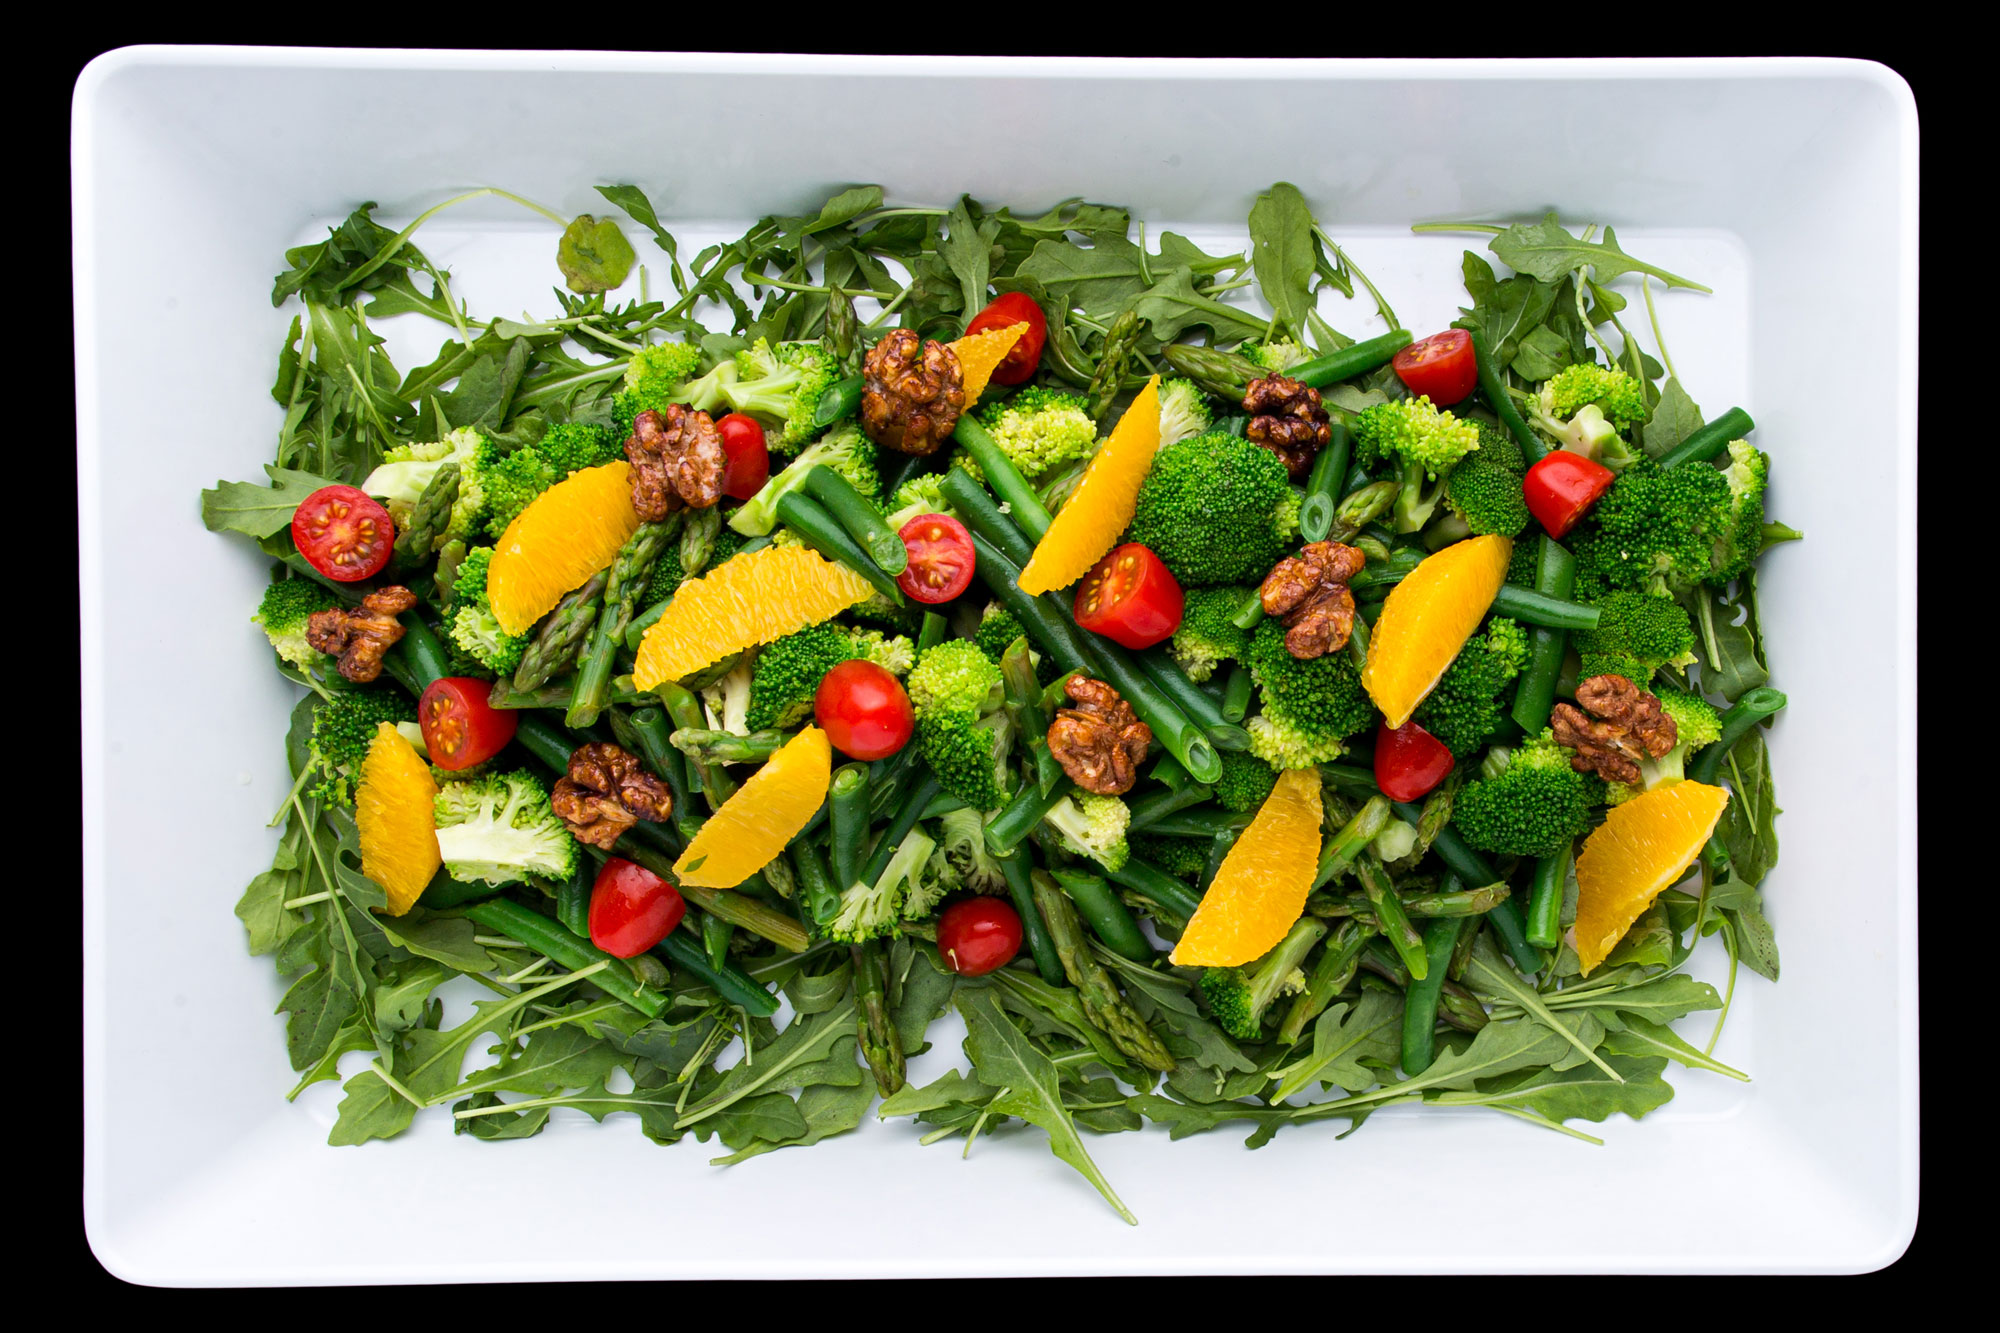 Green salad with broccoli and orange slices